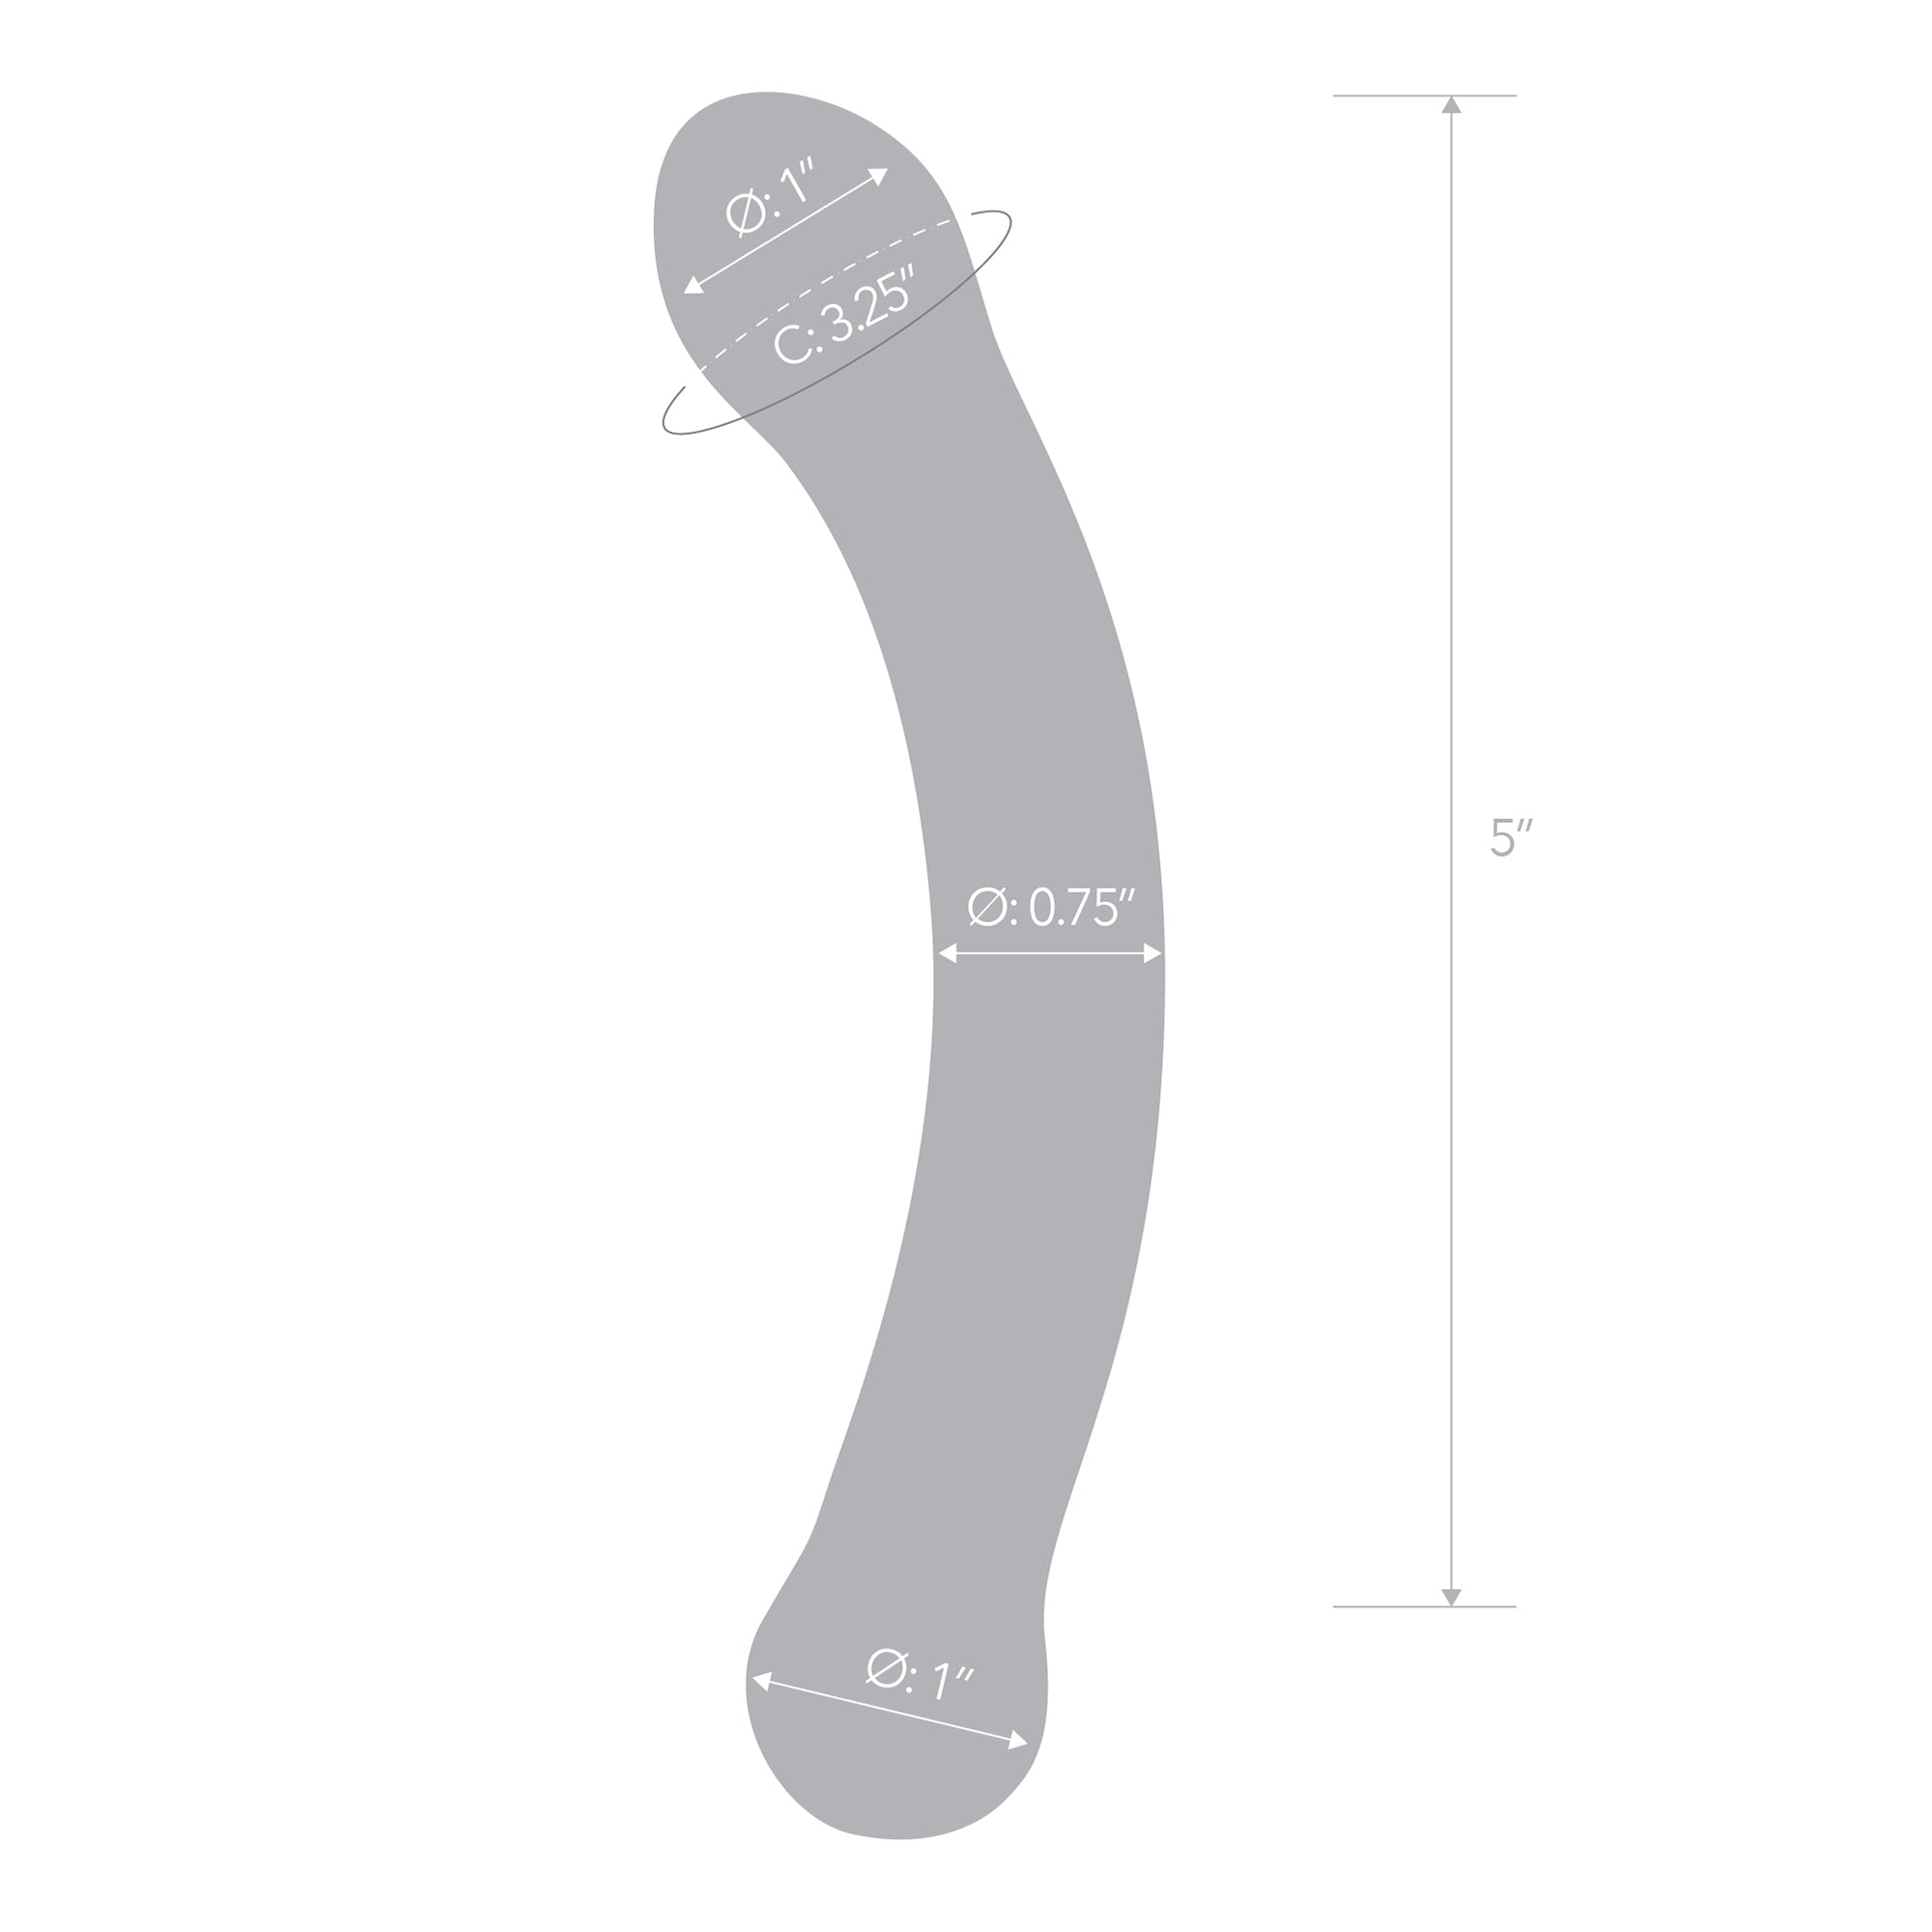 Specifications of the Gläs 6 inch Curved G-spot Blue Glass Dildo